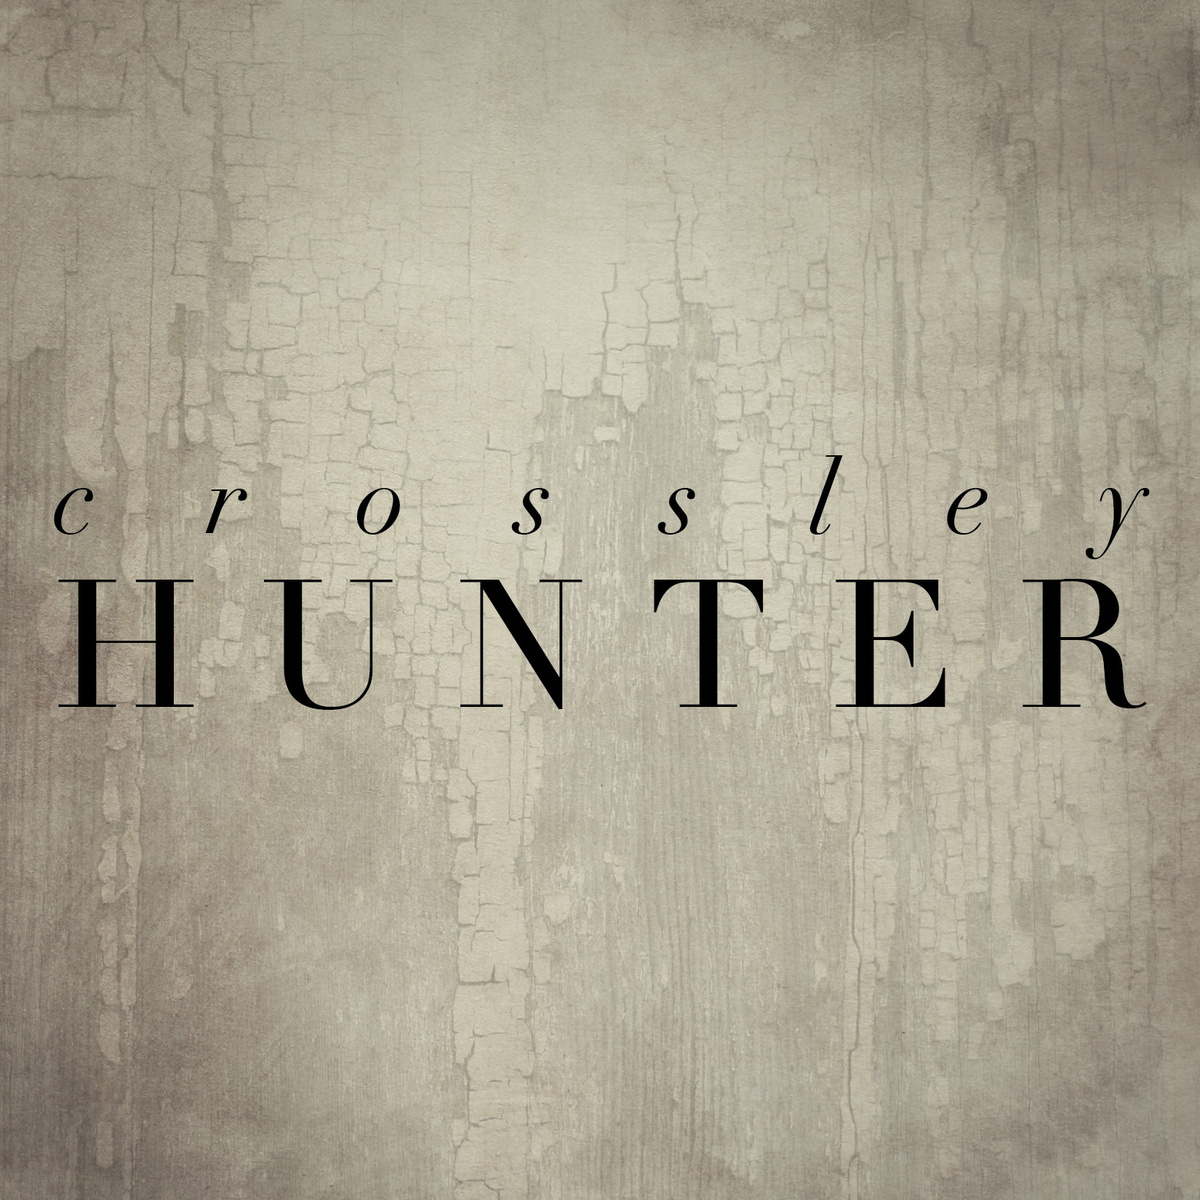 Crossley Hunter album cover